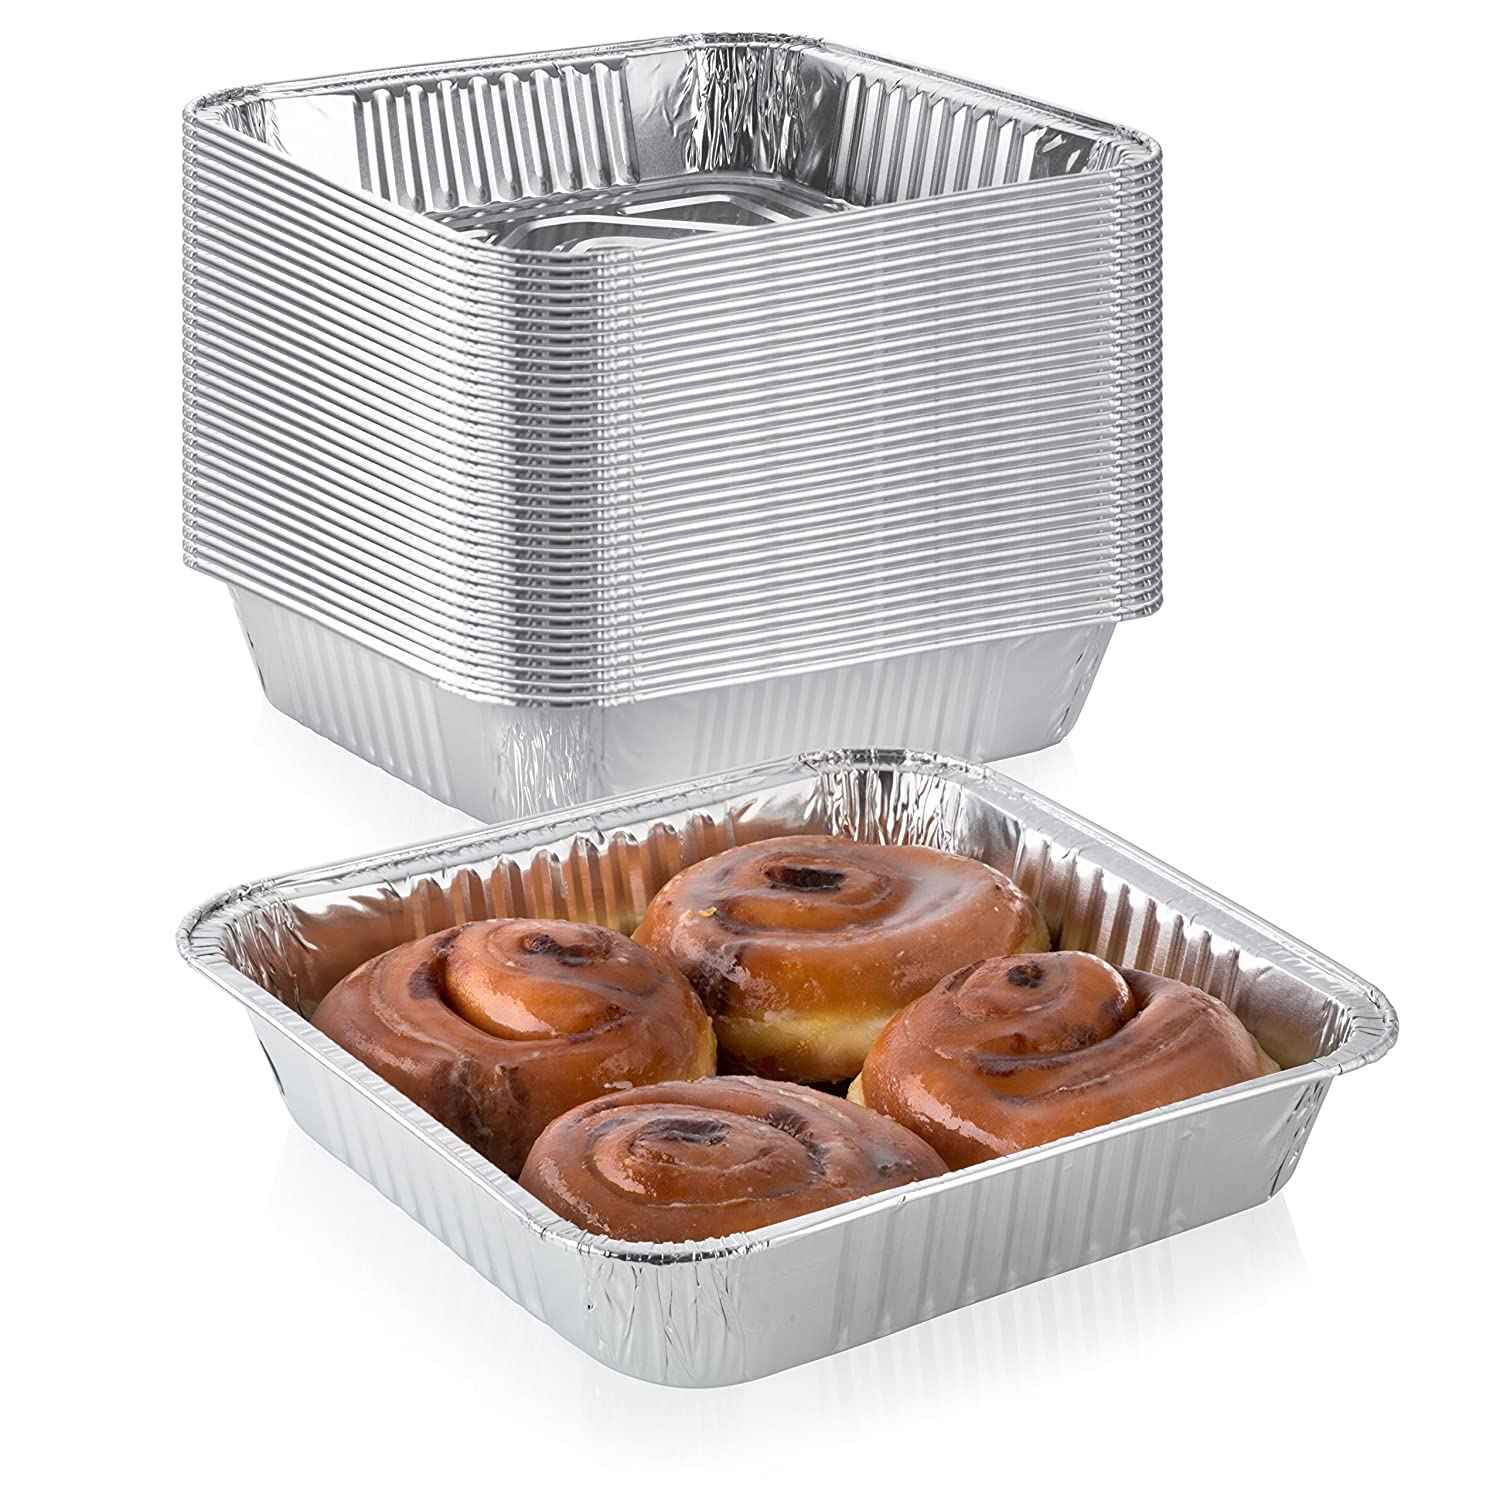 "Pack of 20 Extra-Thick Disposable Aluminum Baking Pans | Standard Size 8"" x 8"" Recyclable Square Cooking Tins 